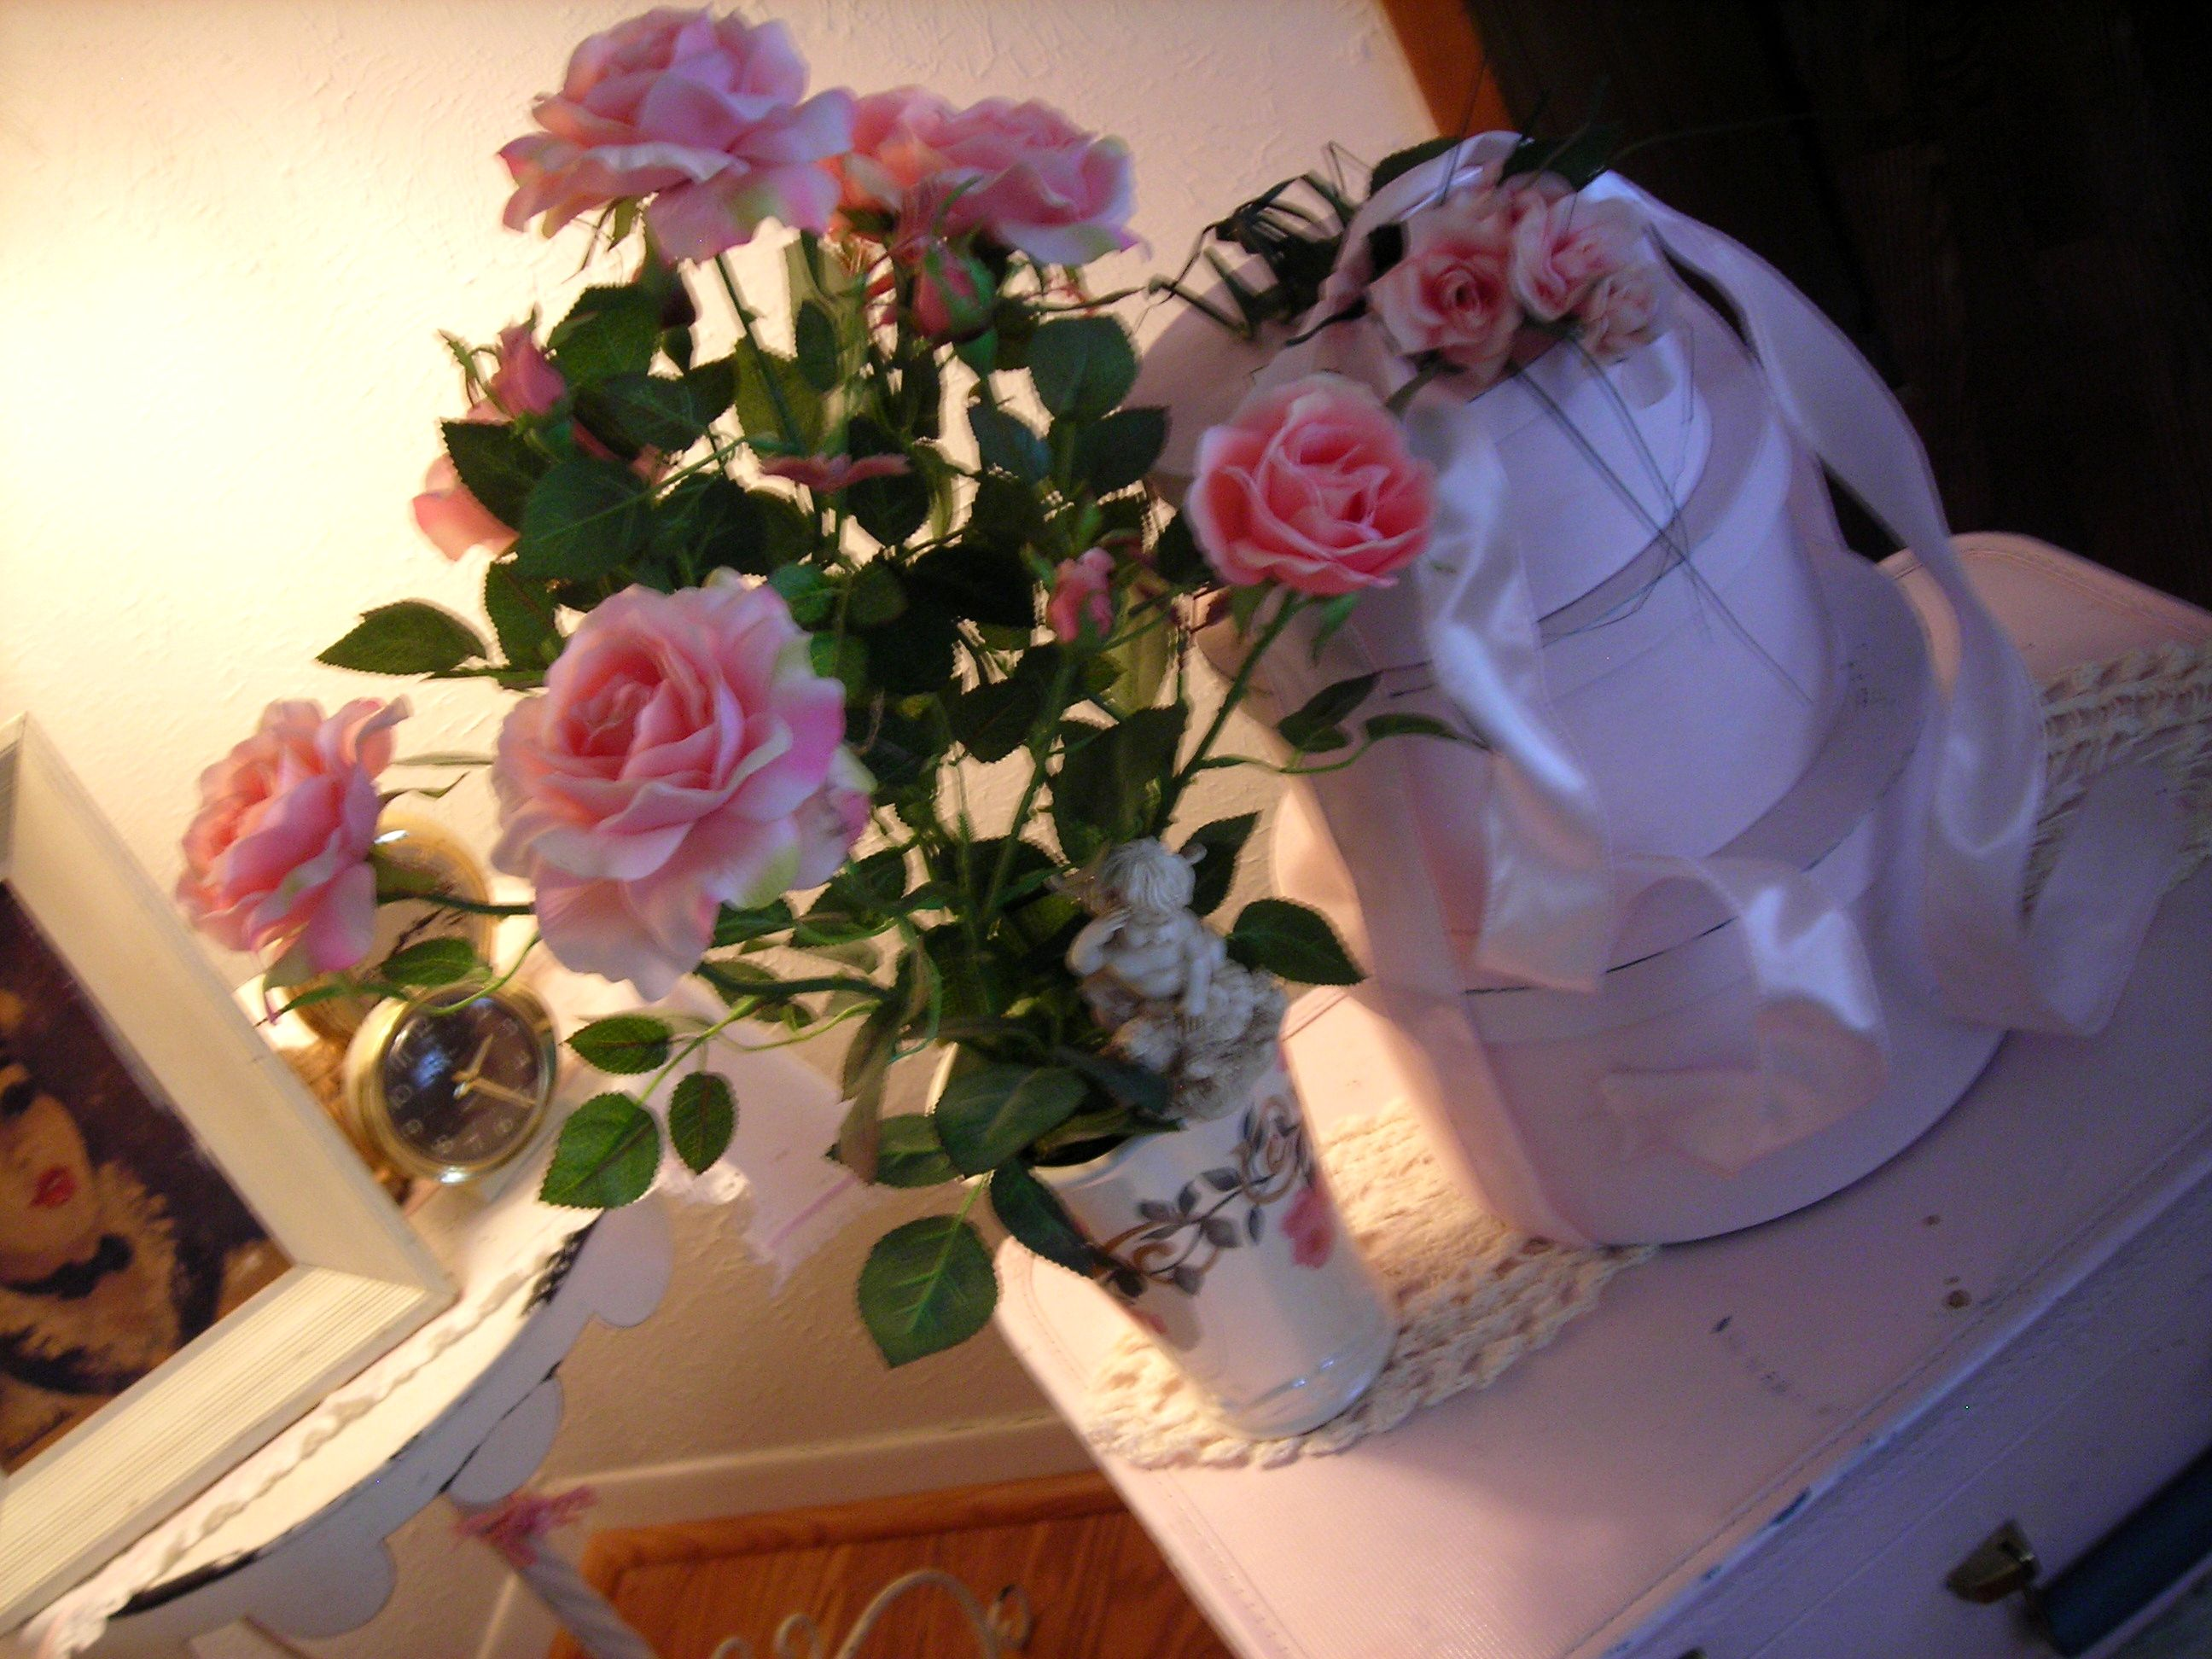 okay, i couldn't resist this rose vase with pink roses from the estate sale. very pretty!